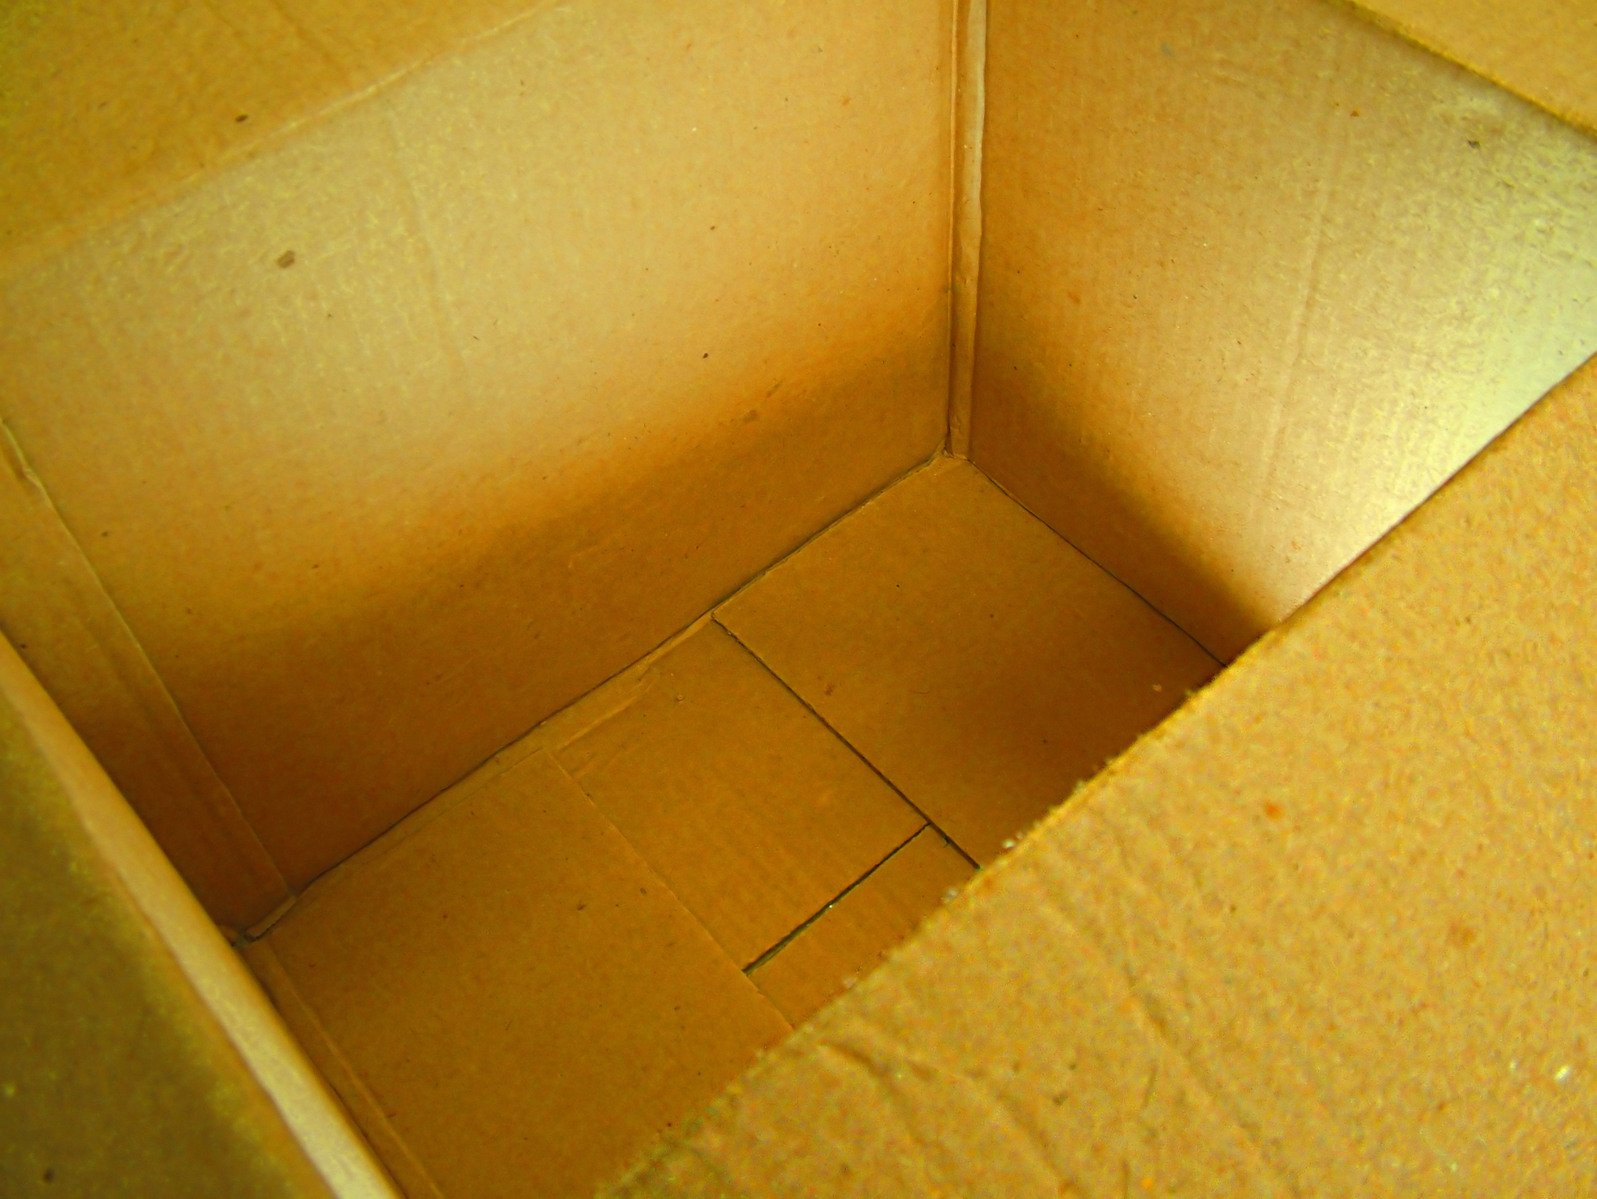 An open box